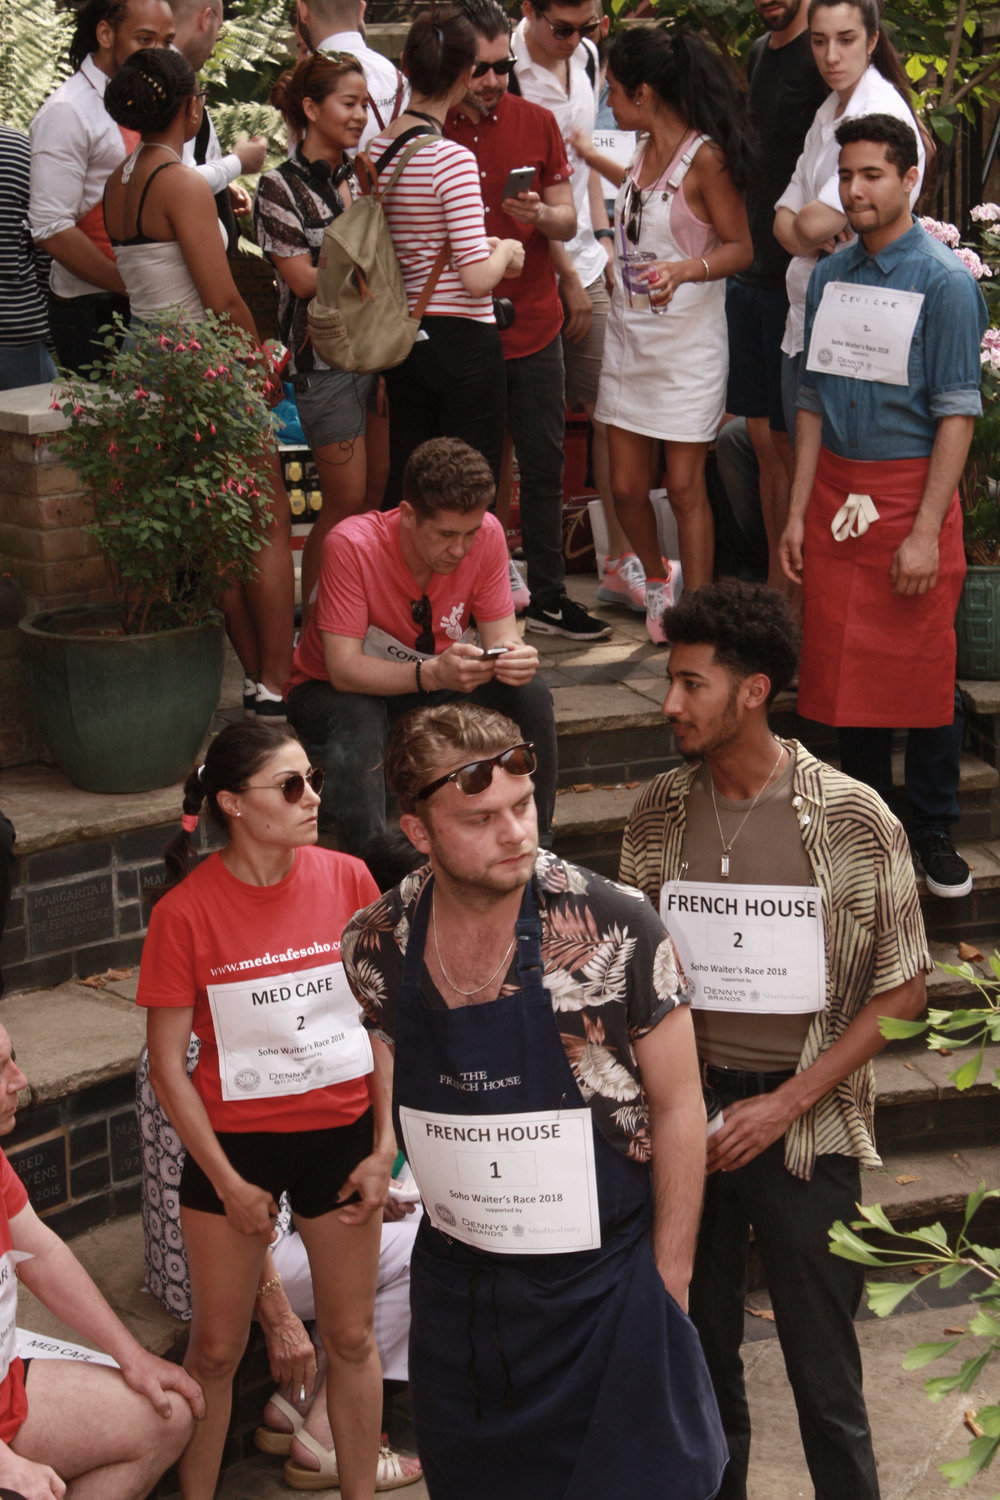 Soho_Fete_Waiters_Race_Registration.jpg